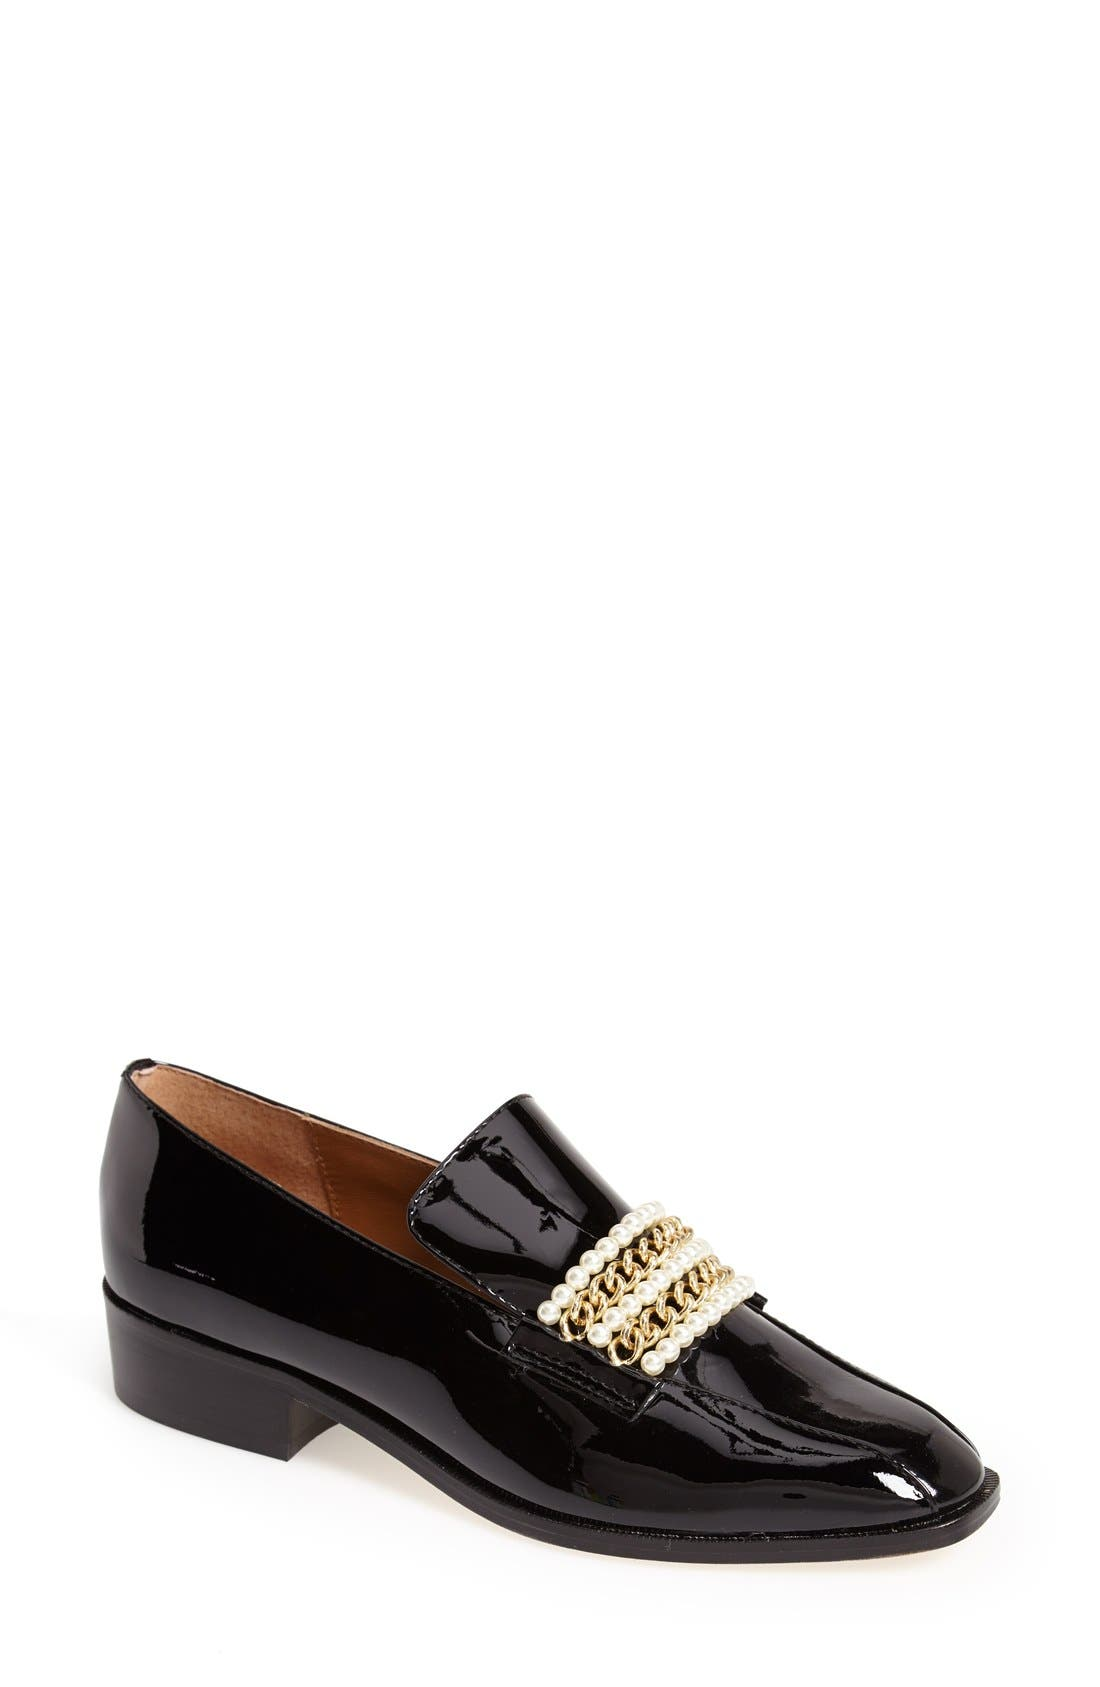 Alternate Image 1 Selected - Bettye Muller 'Pearl' Patent Leather Loafer (Women)